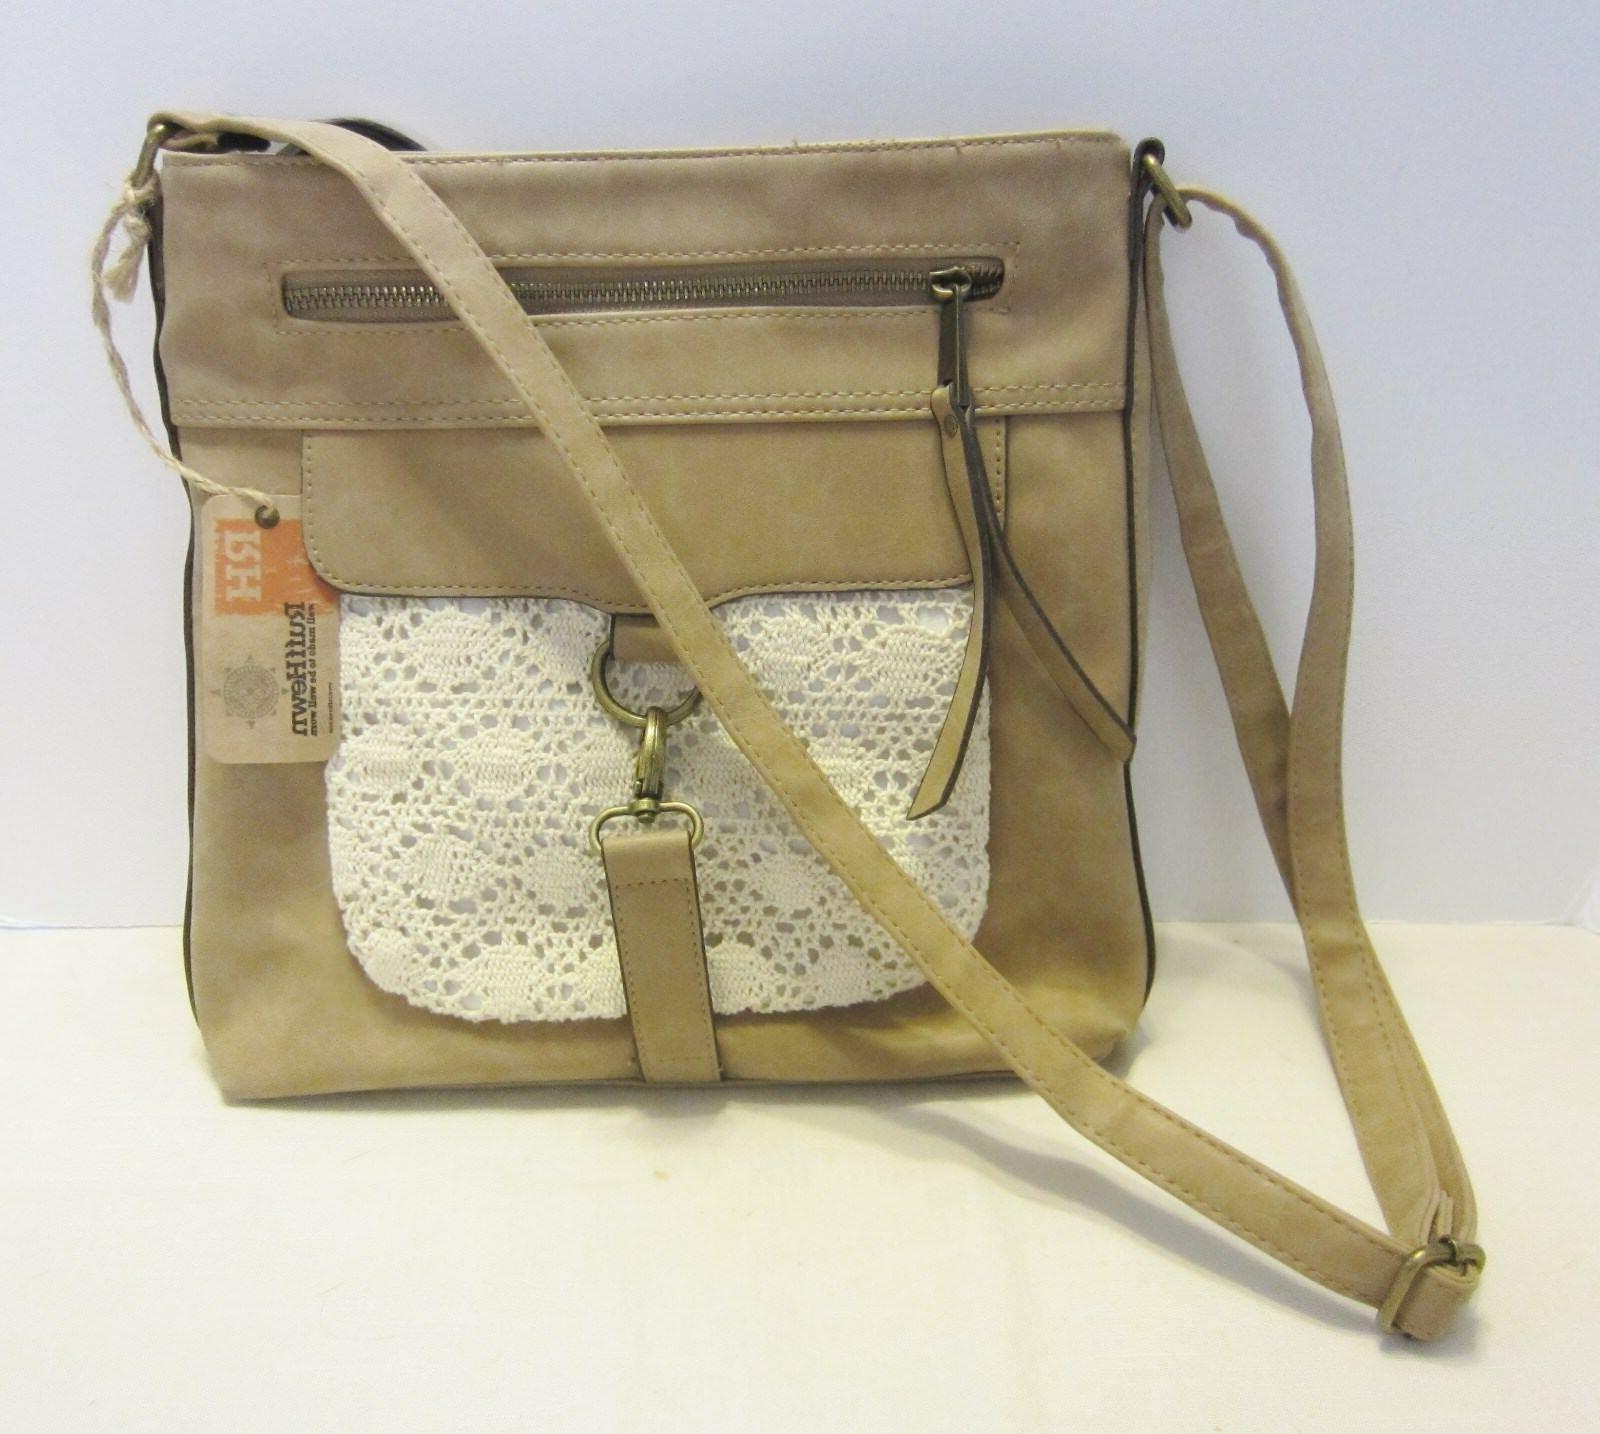 Rough Hewn Tan Faux Leather Cross Body Shoulder Bag with Lac